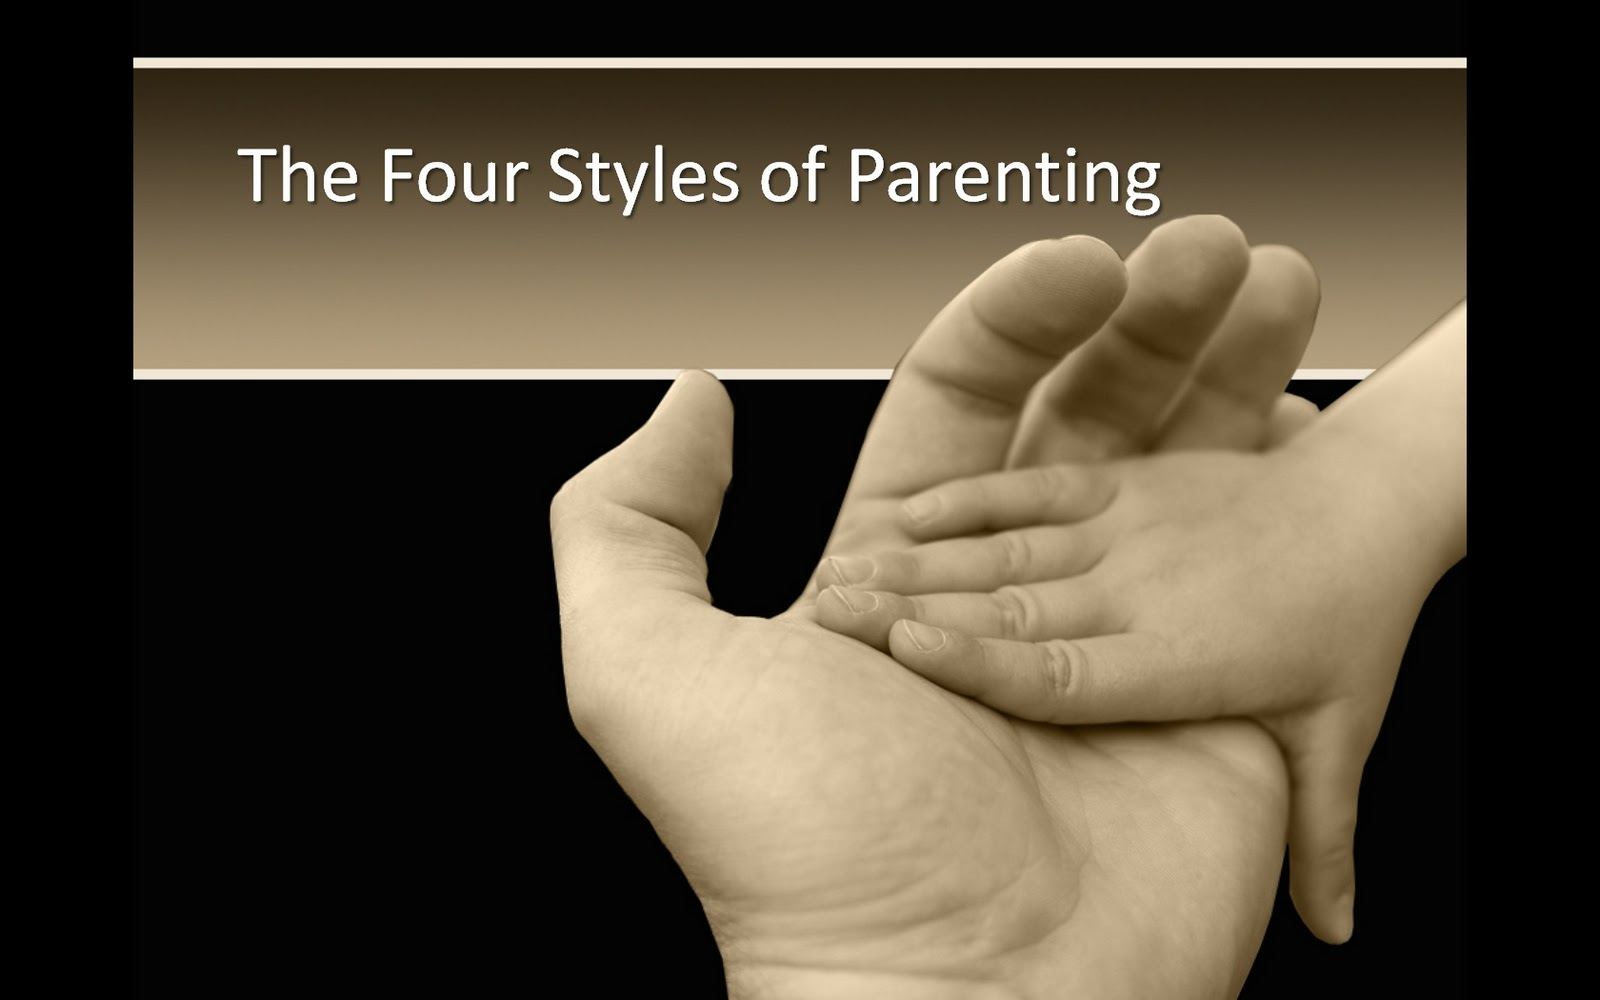 four parenting styles Parenting style and its correlates according to whether they are high or low on parental demandingness and responsiveness creates a typology of four parenting.